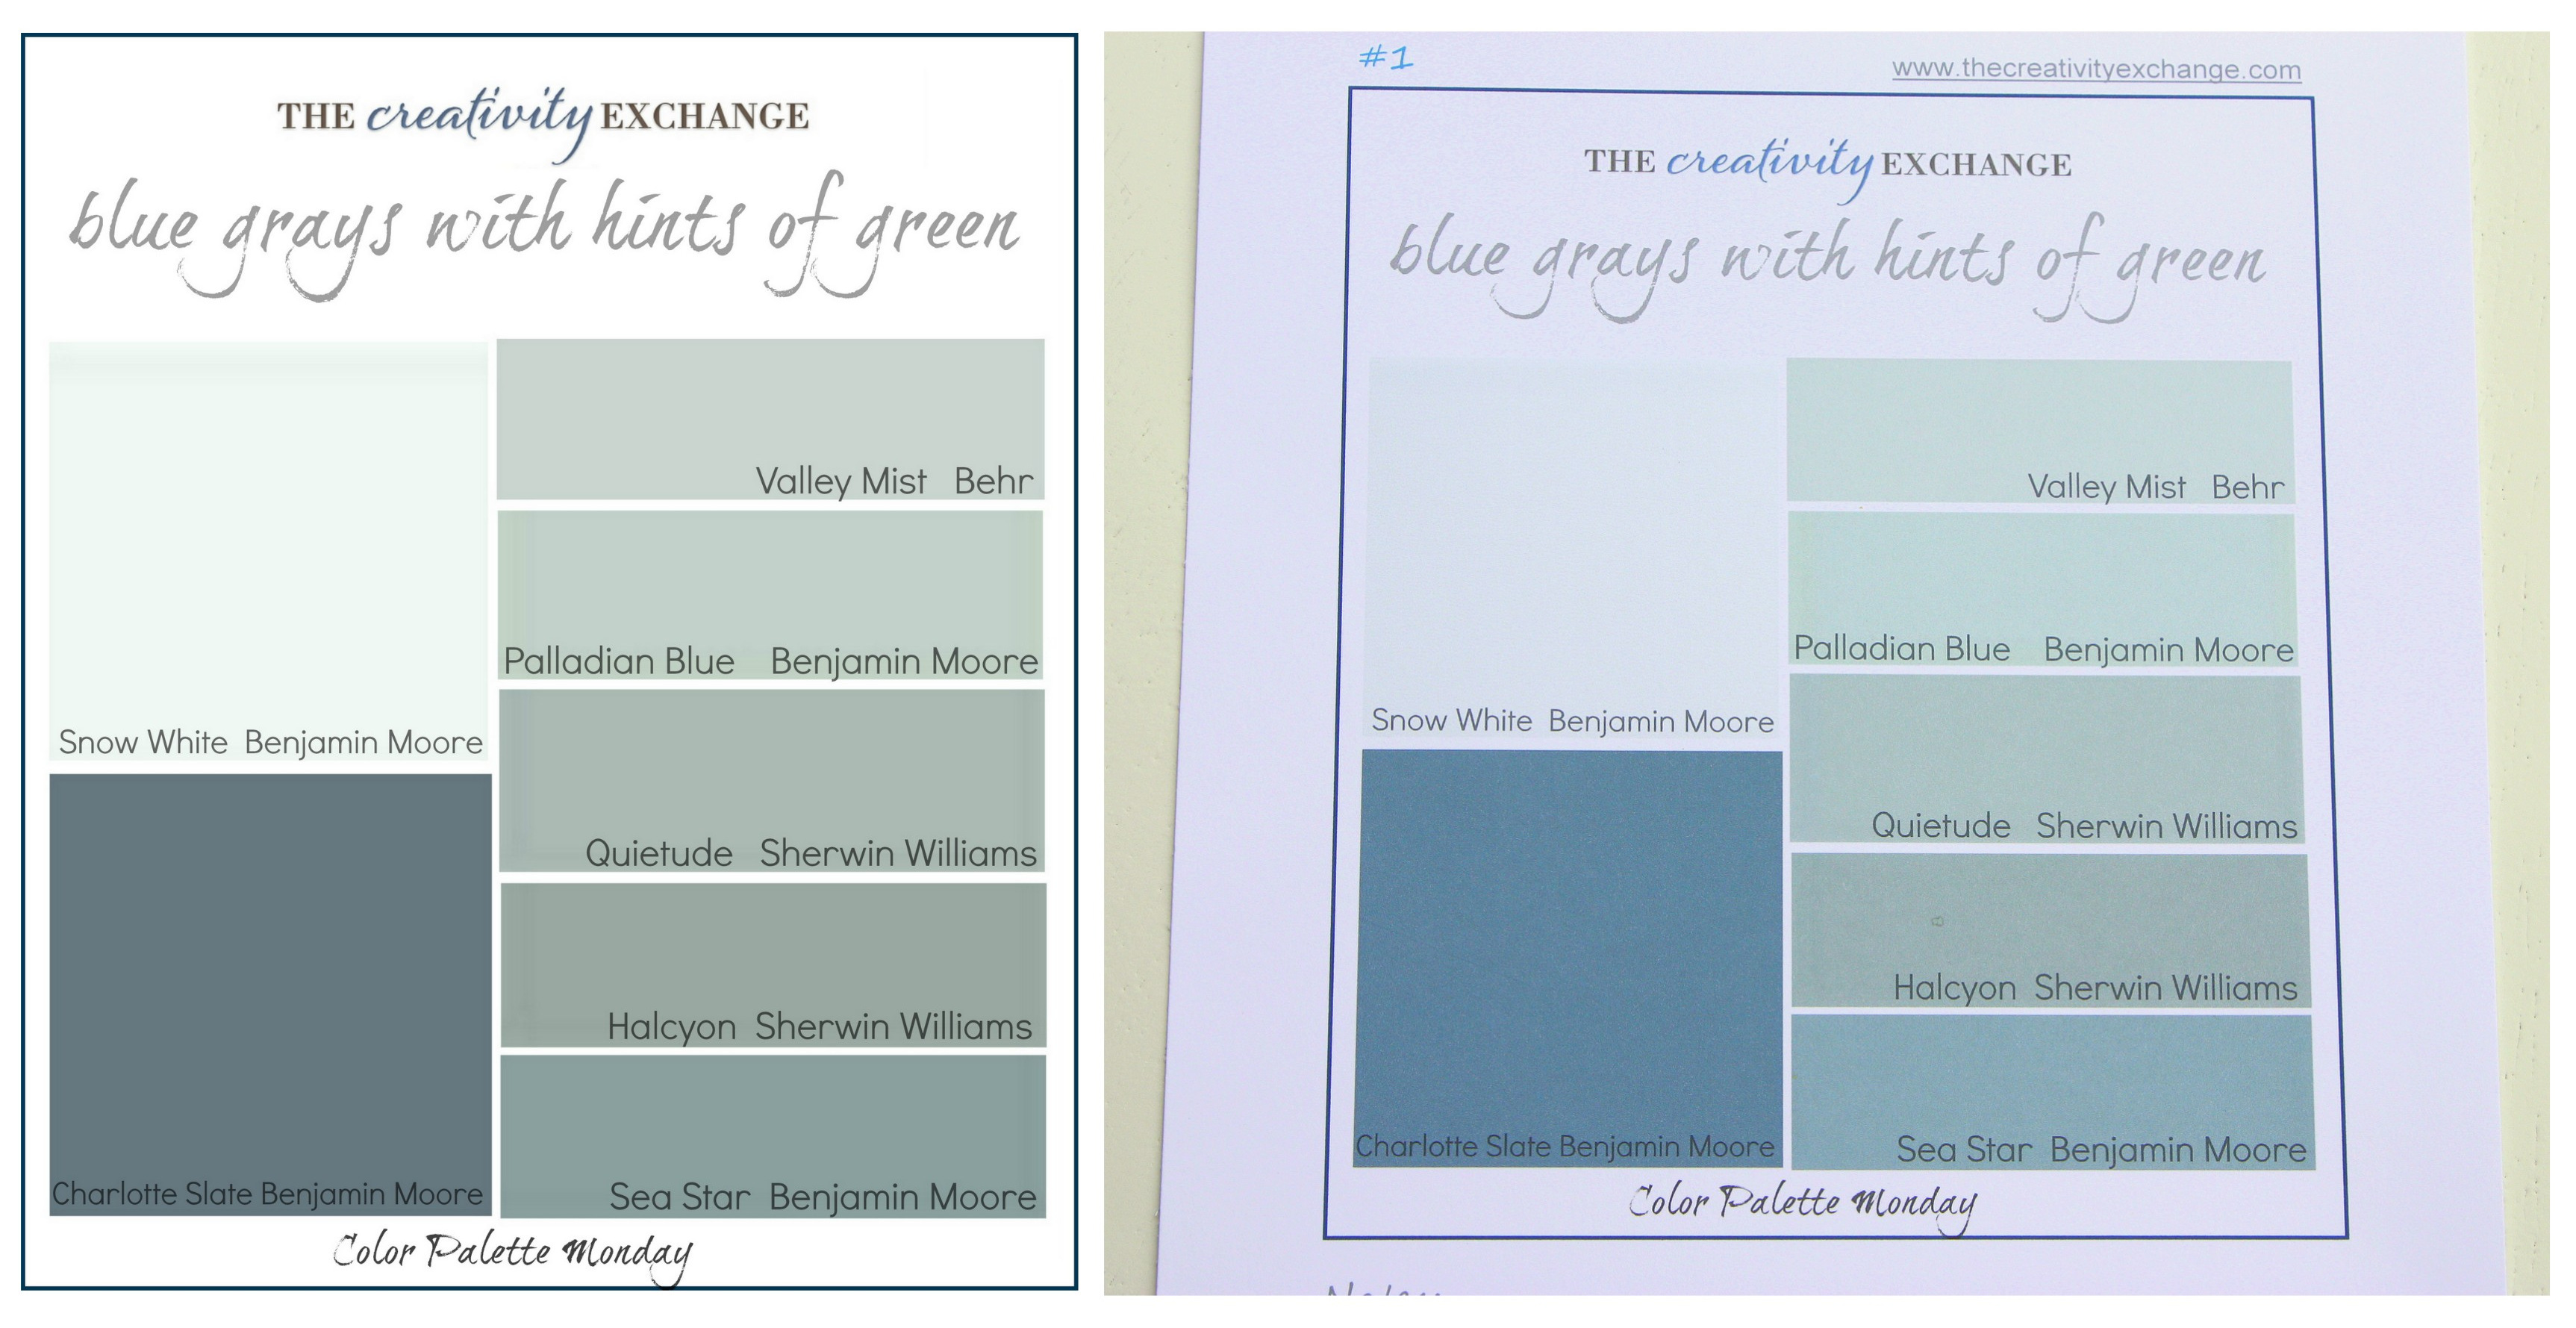 Benjamin moore palladian blue bathroom - Color Palette Monday 1 The Creativity Exchange